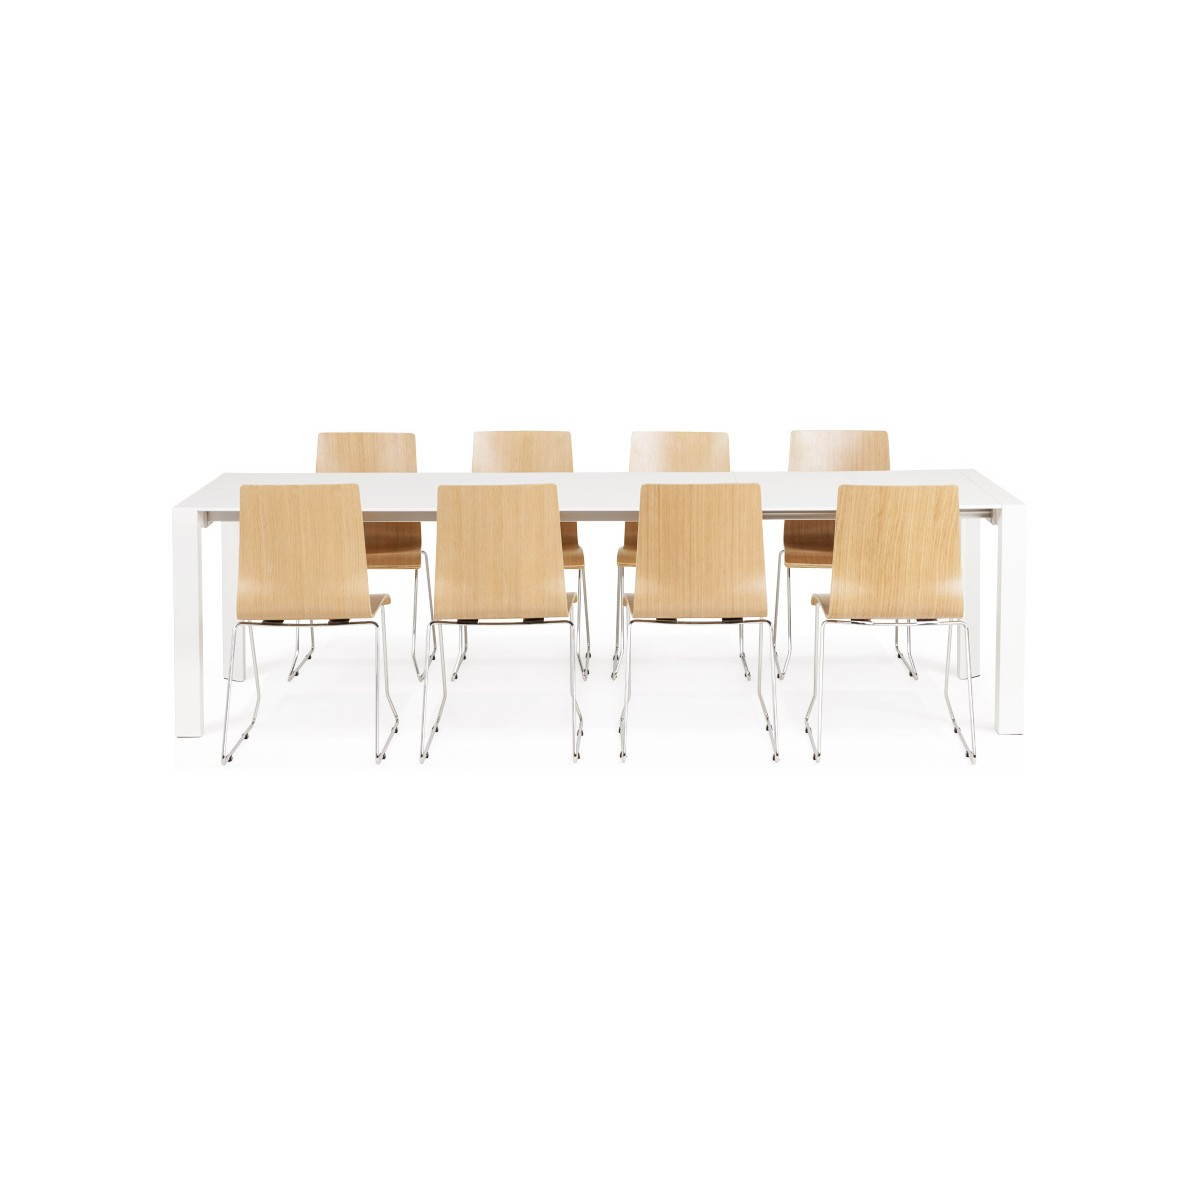 Table design avec 2 rallonges macy en bois peint blanc english english - Table ronde bois blanc ...